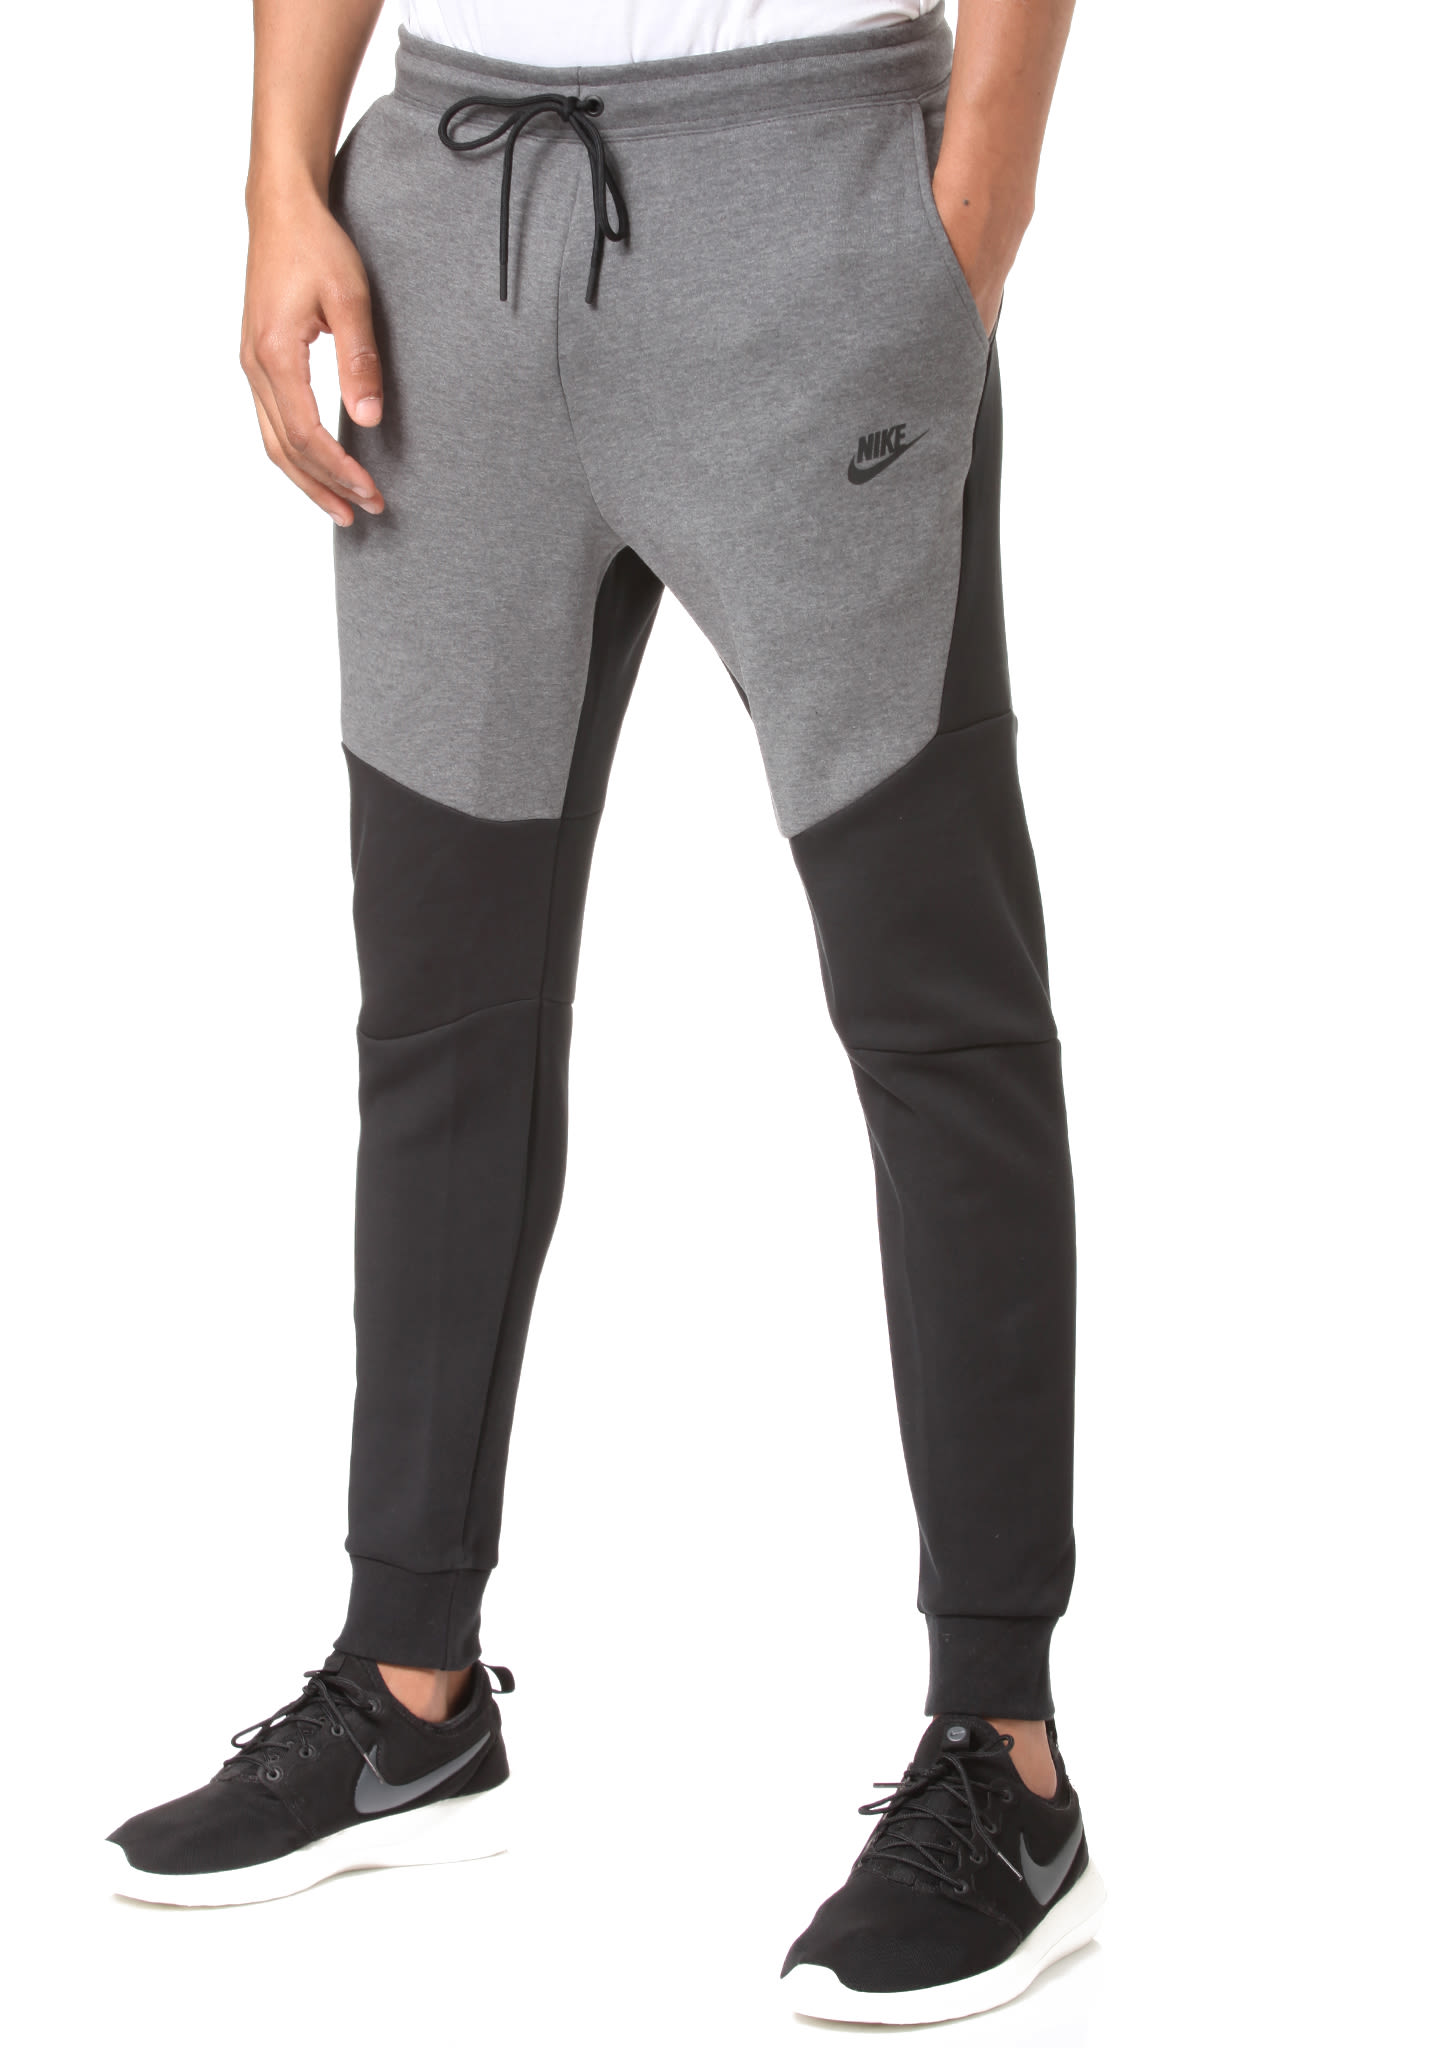 eb0263d1b95d7c NIKE SPORTSWEAR Tech Fleece - Trainingshose für Herren - Schwarz - Planet  Sports